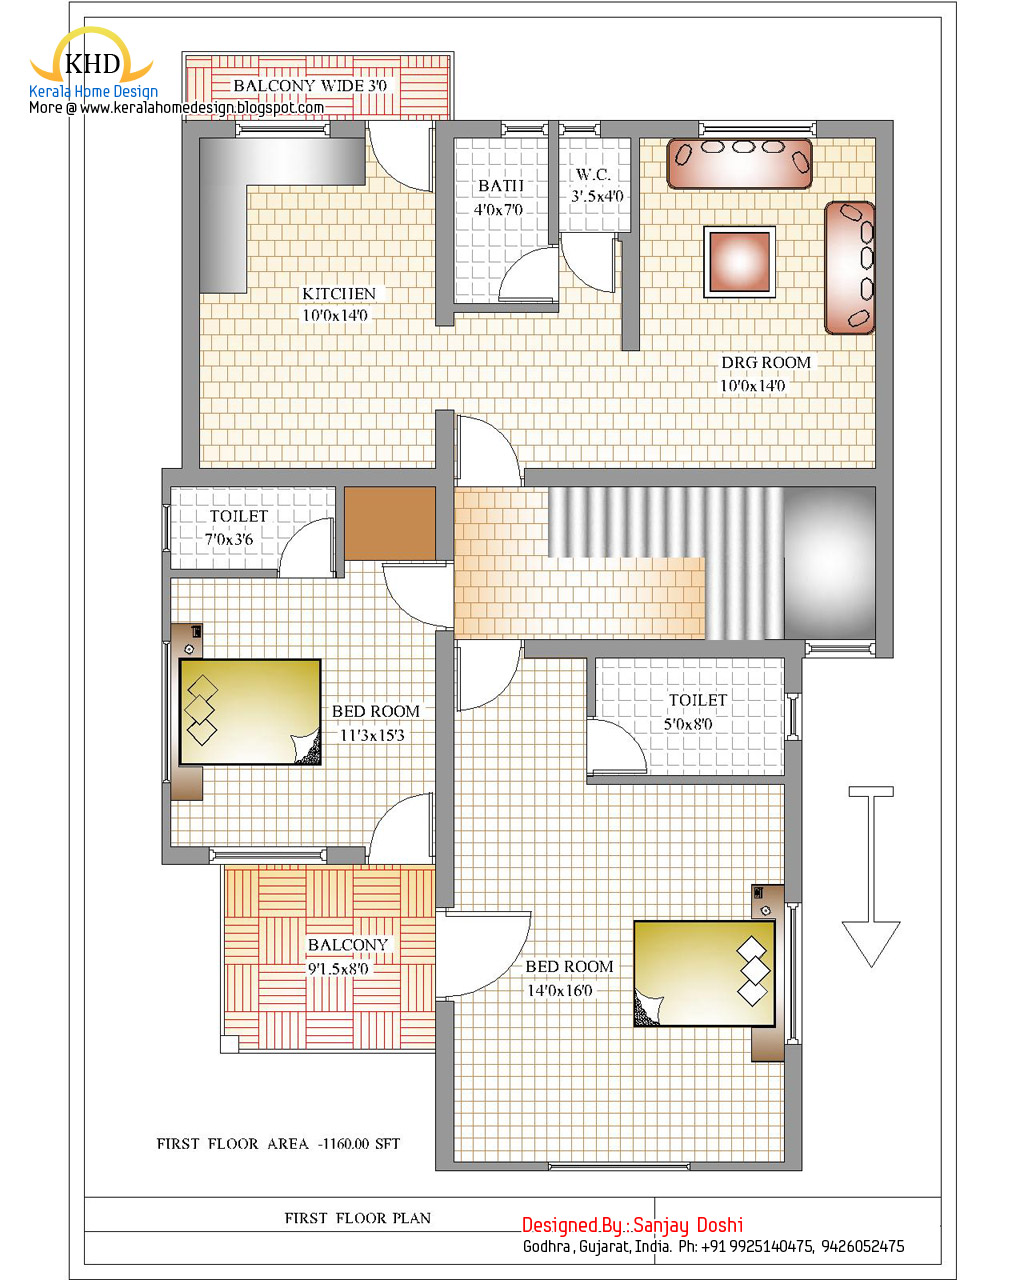 Duplex house plan and elevation 2310 sq ft kerala home design and floor plans House floor plan design